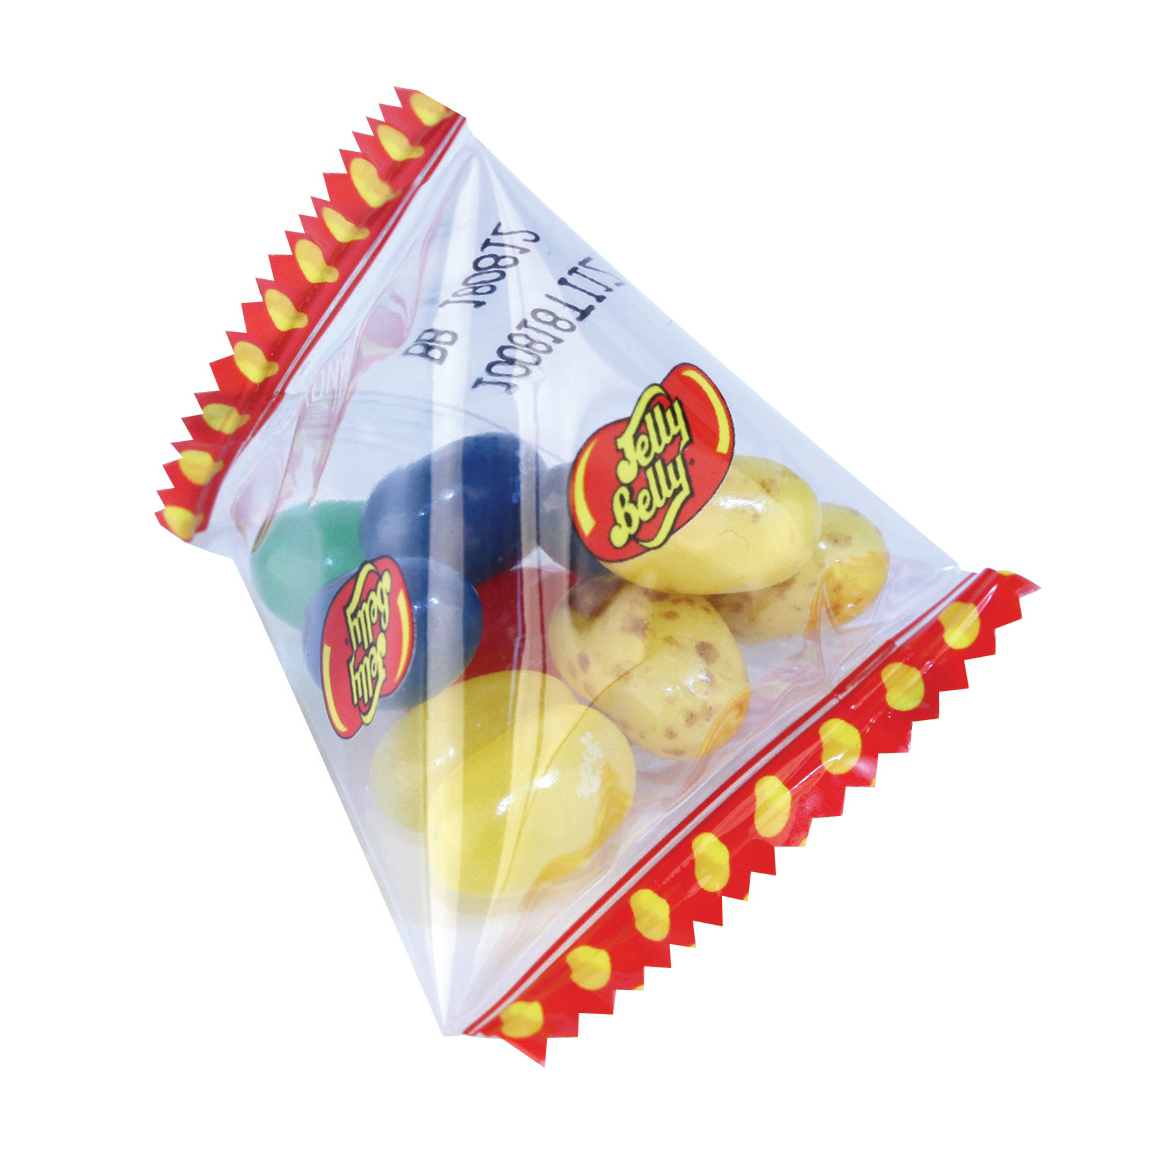 Sweets / Chocolate Jelly Belly Jelly Bean Pyramids Assorted Flavours 10g Pack 300